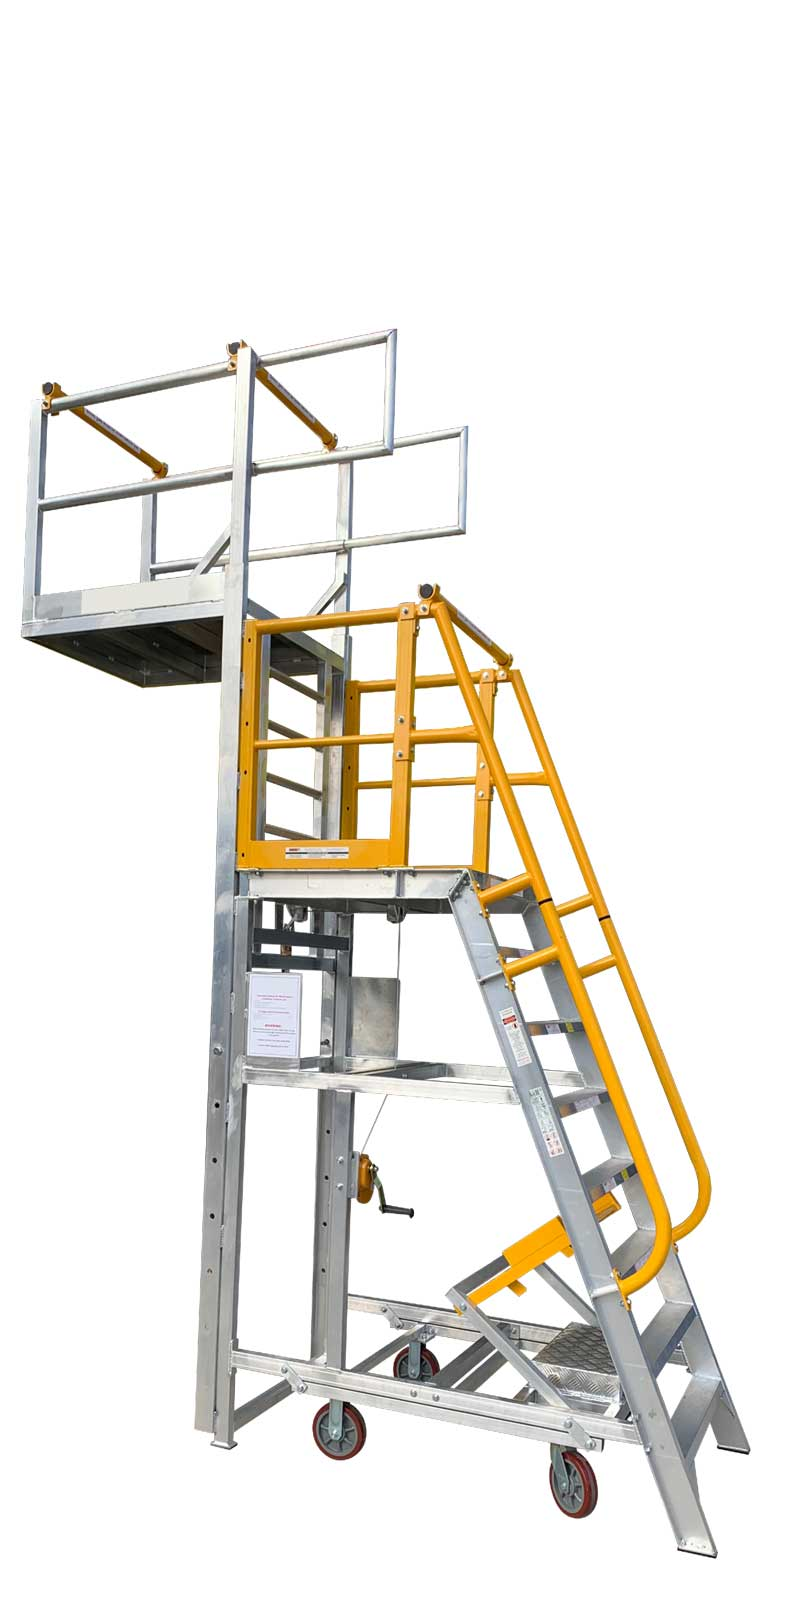 ADJP1400 Adjustable Cantilever Work platform Raised